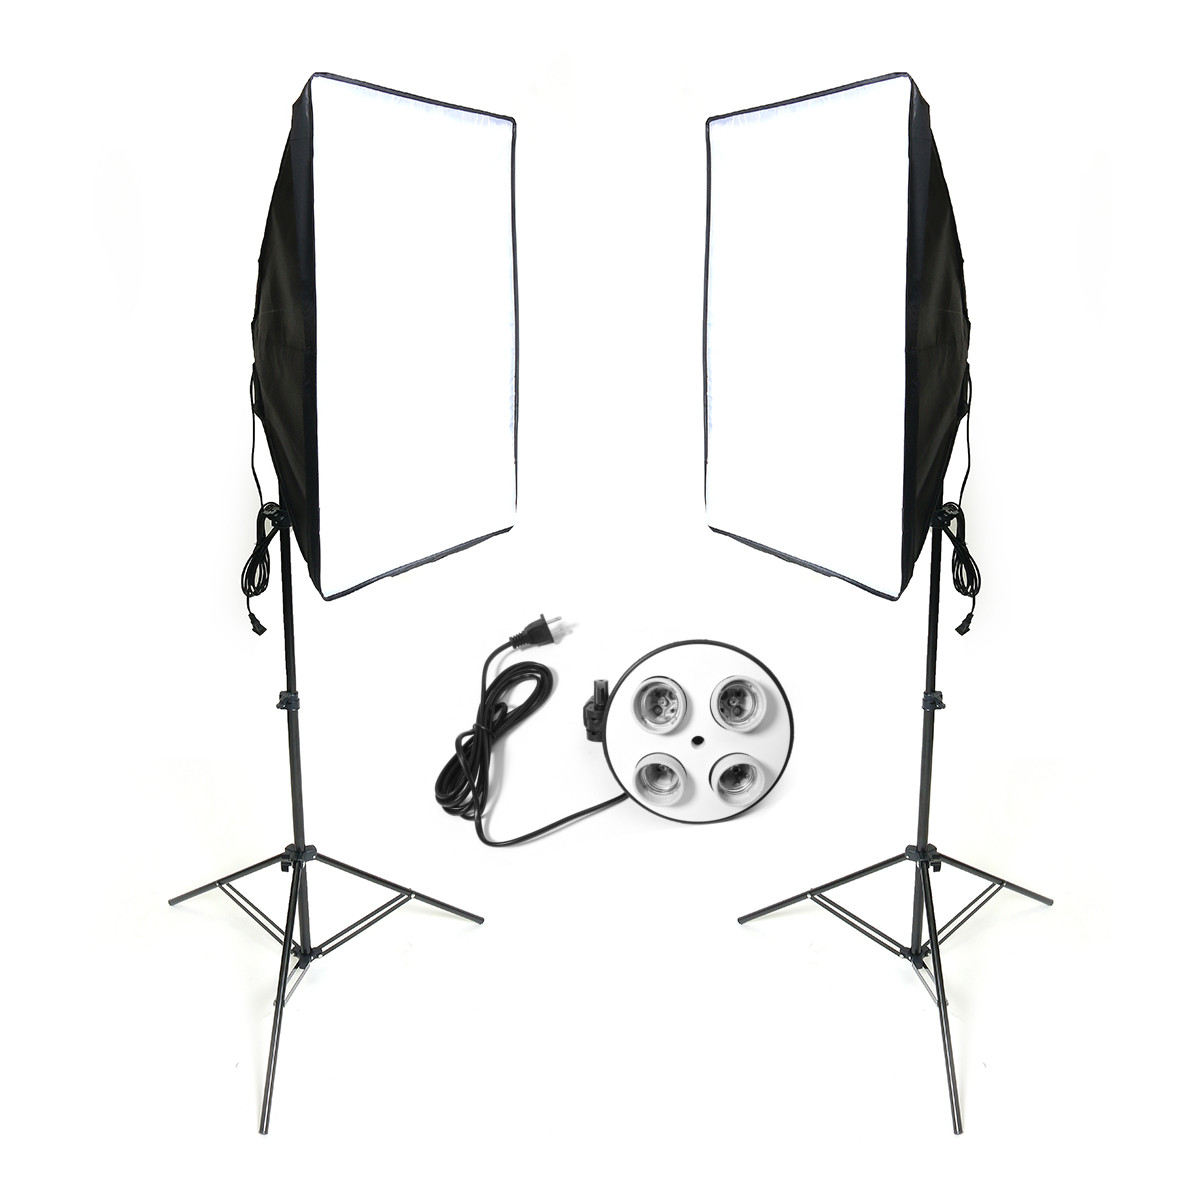 50x70cm Photography Softbox Lighting Kit Stand Tripod Camera Studio Equipment New Arrival new arrive 240 cm 95 inch portable photo video studio tripod stand for dslr camera speedlite softbox photography light stand